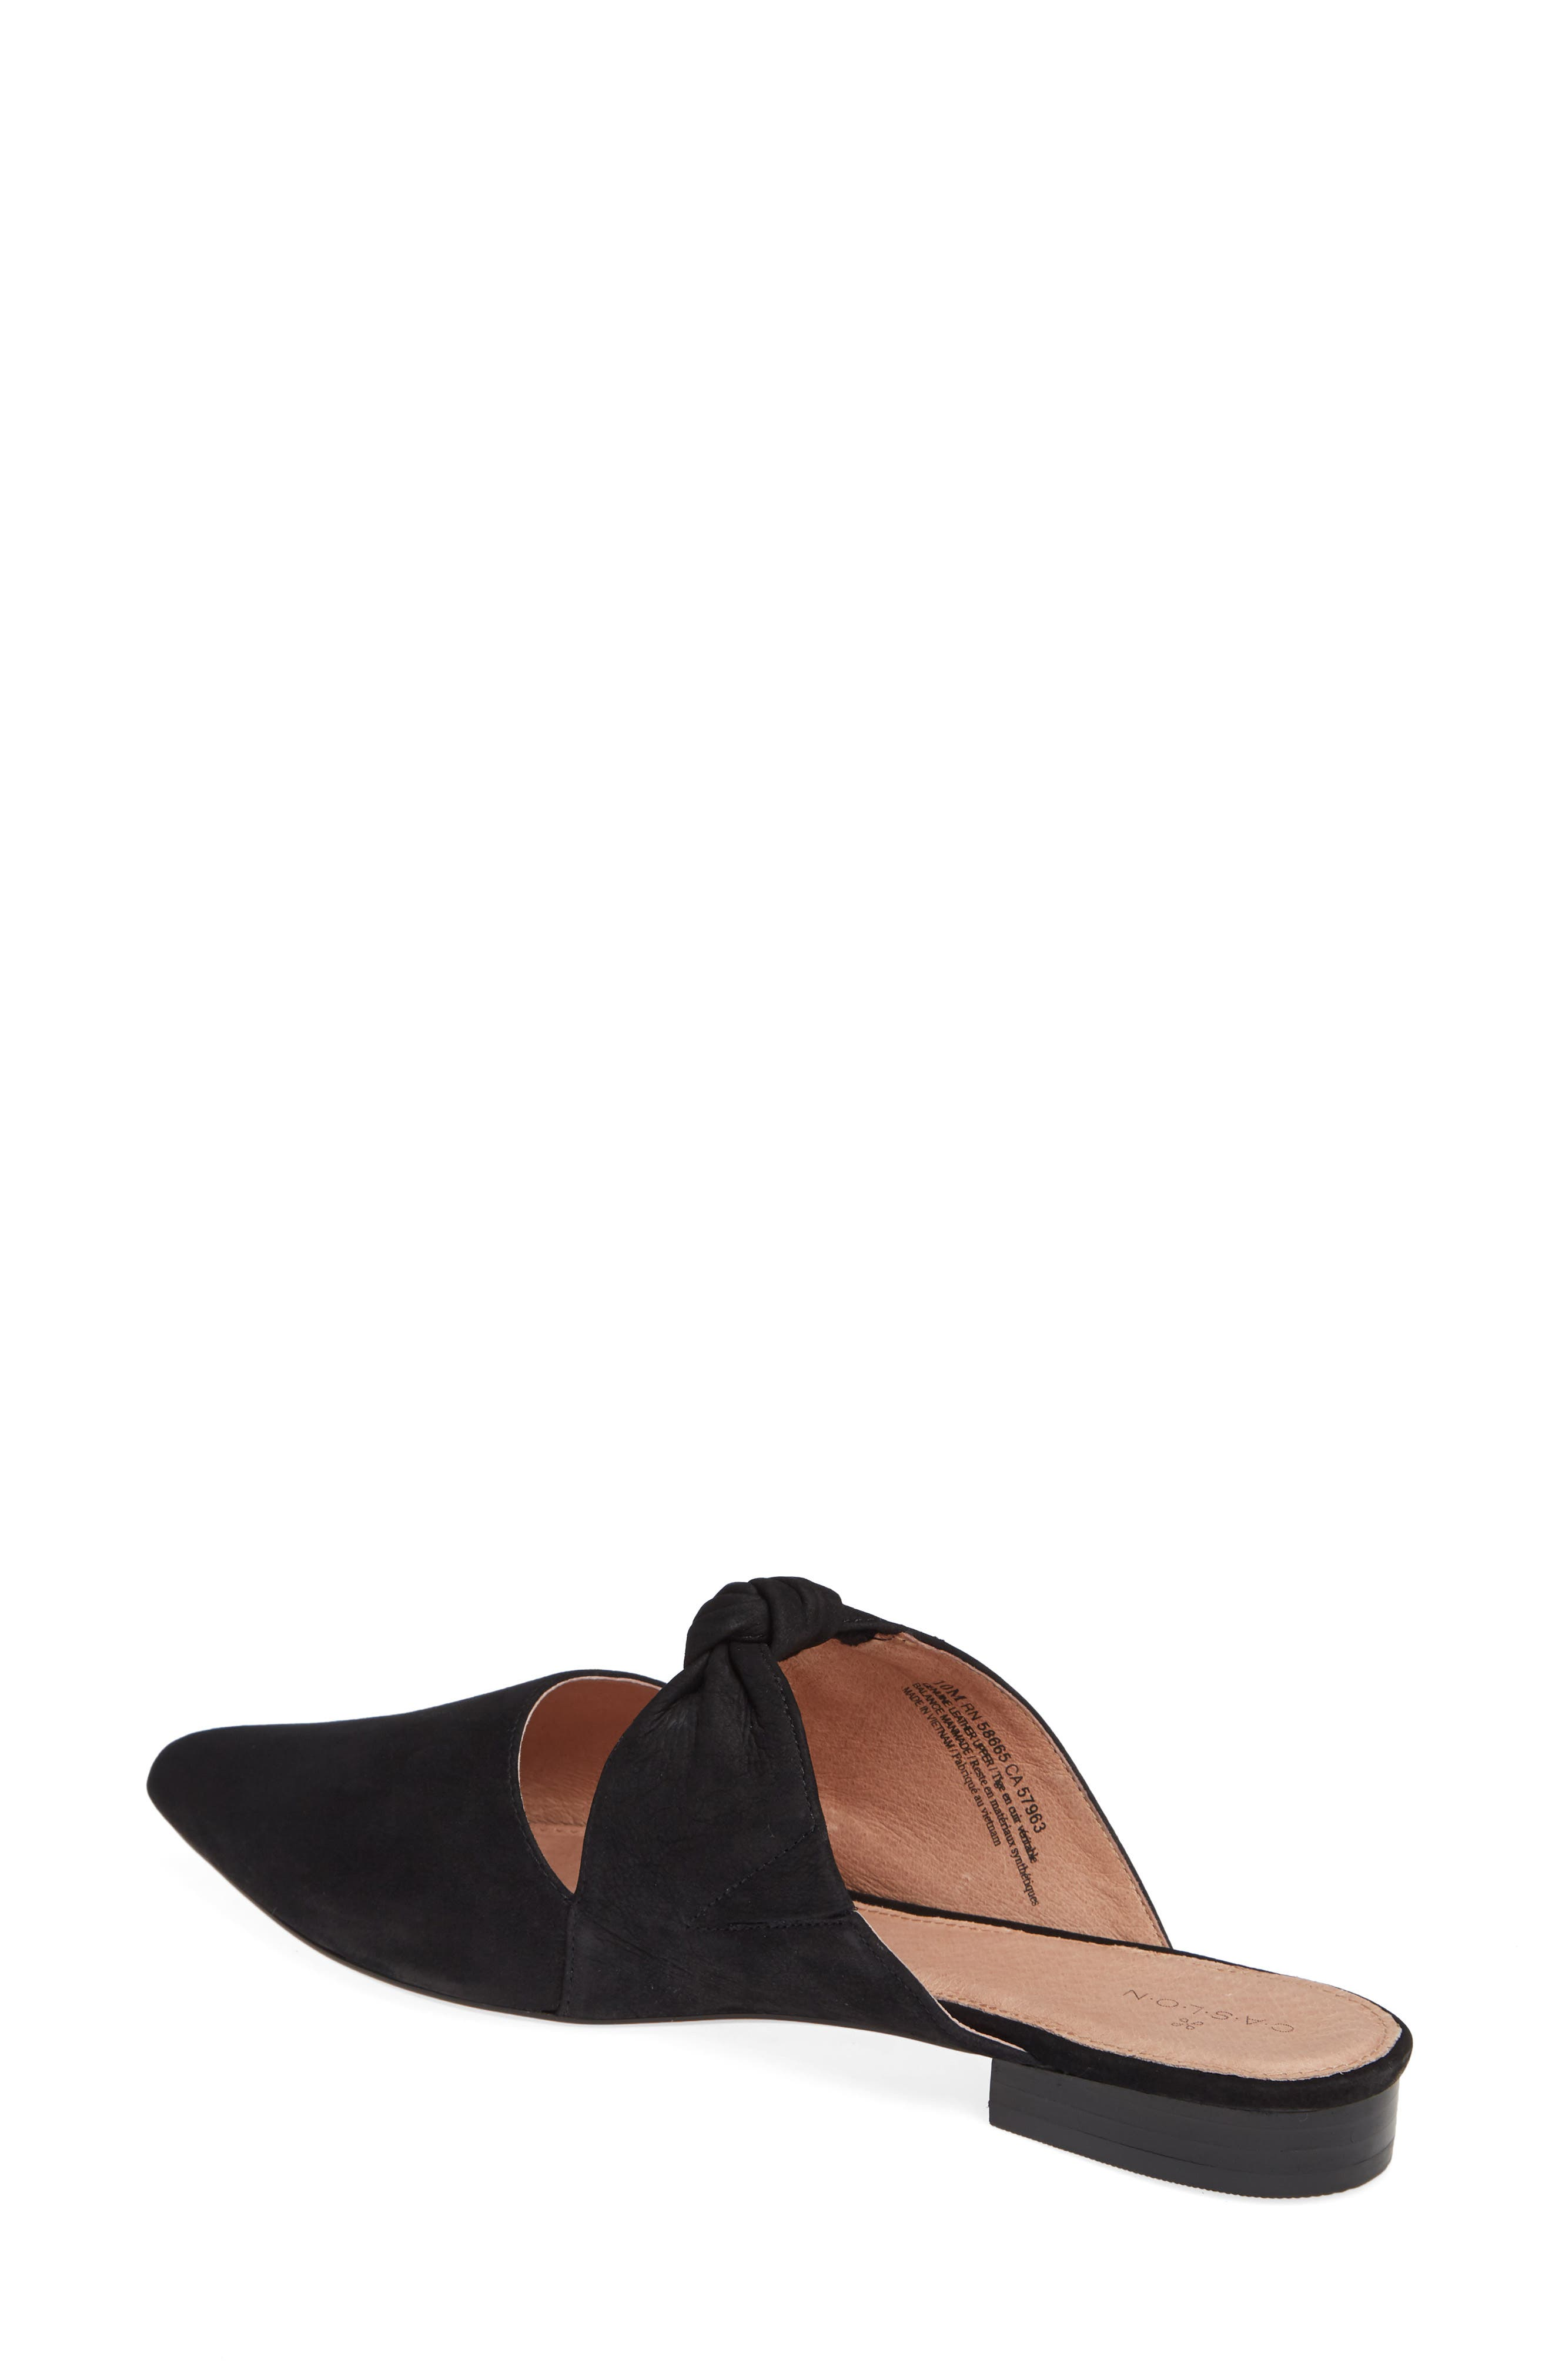 Luke Knotted Mule,                             Alternate thumbnail 2, color,                             BLACK NUBUCK